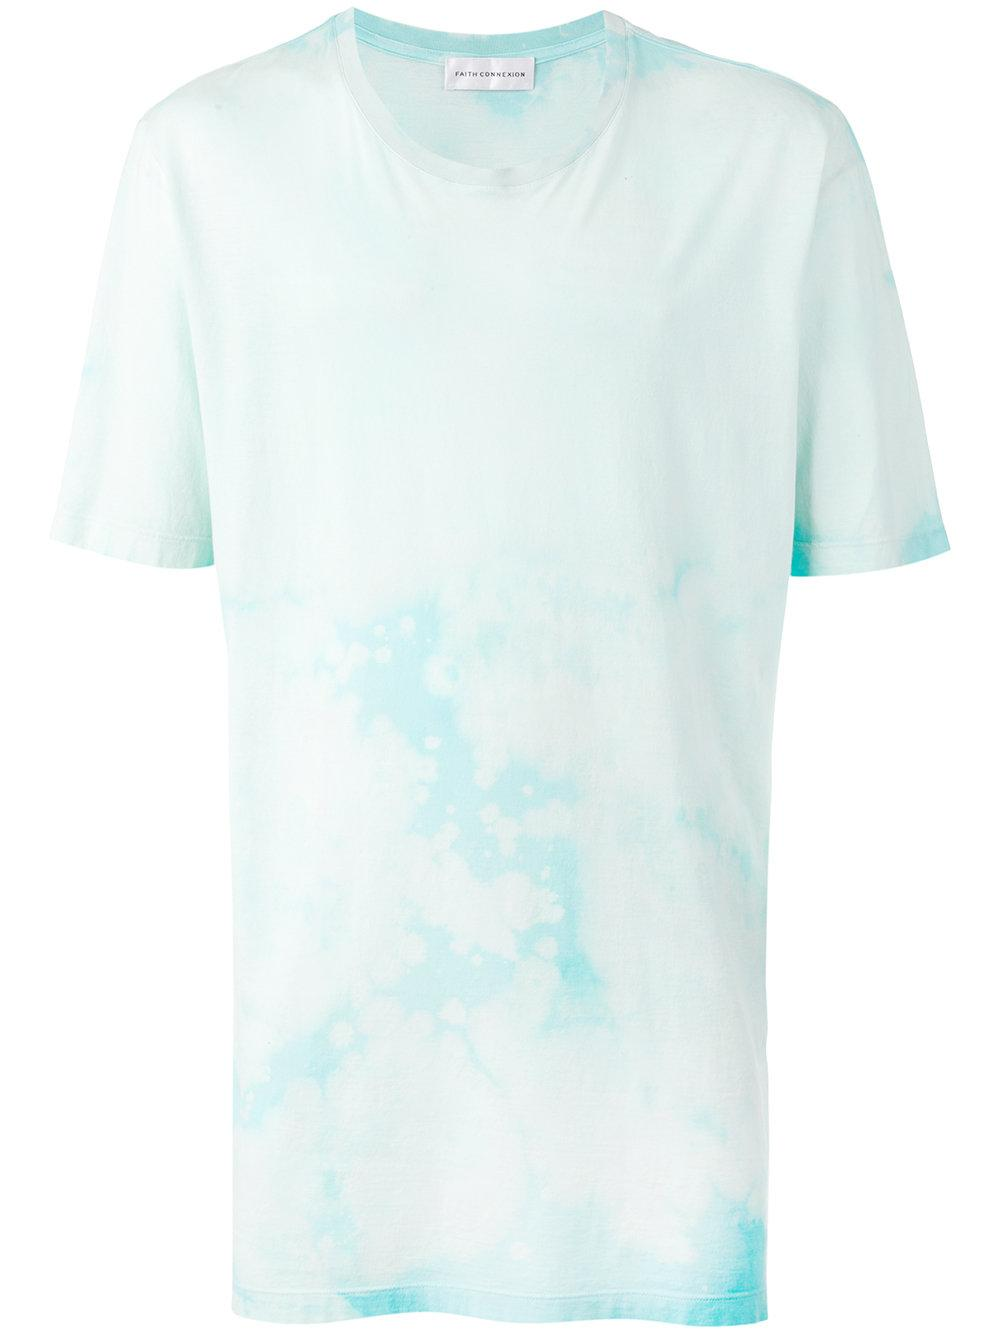 Faith connexion tie dye print t shirt in blue for men lyst for Tie dye printed shirts